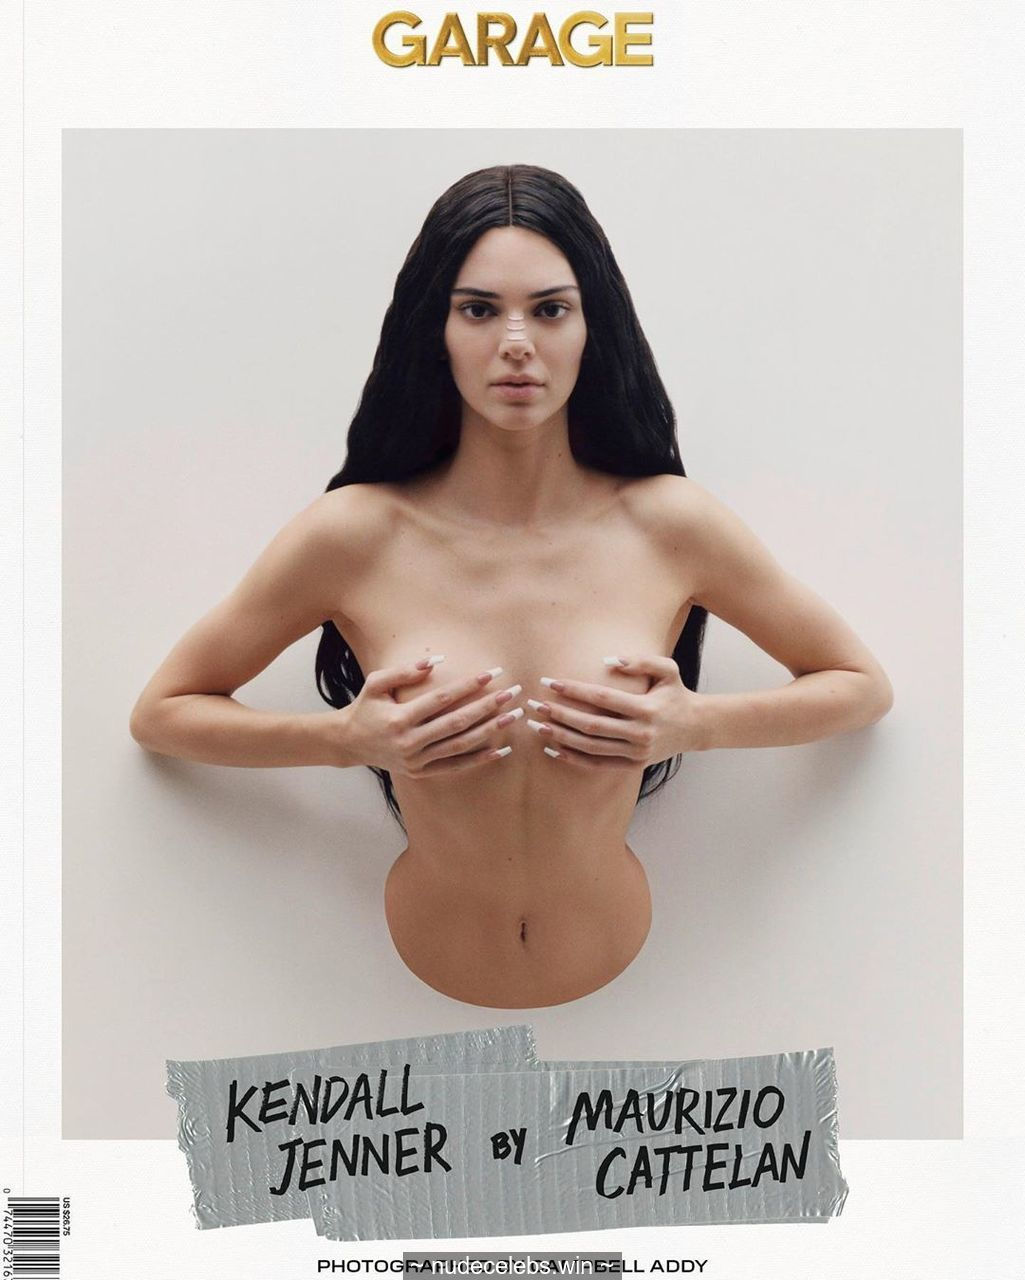 http://nudecelebs.win/posts/2020/02/46/images/kendall-jenner-sexy-and-topless-for-garage-magazin ...